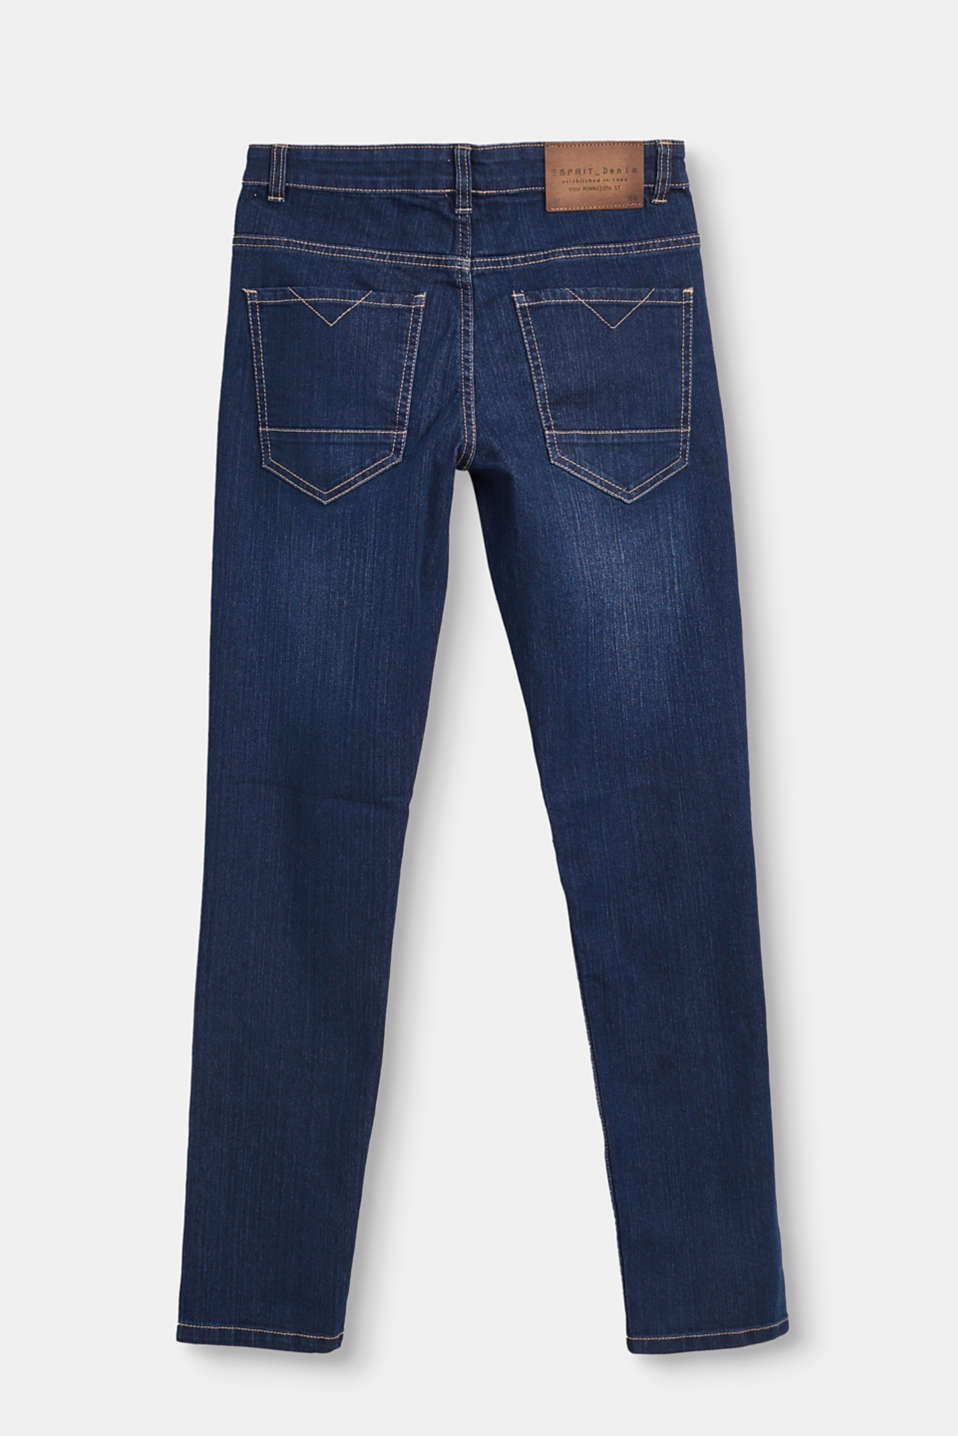 Basic adjustable-waist stretch jeans